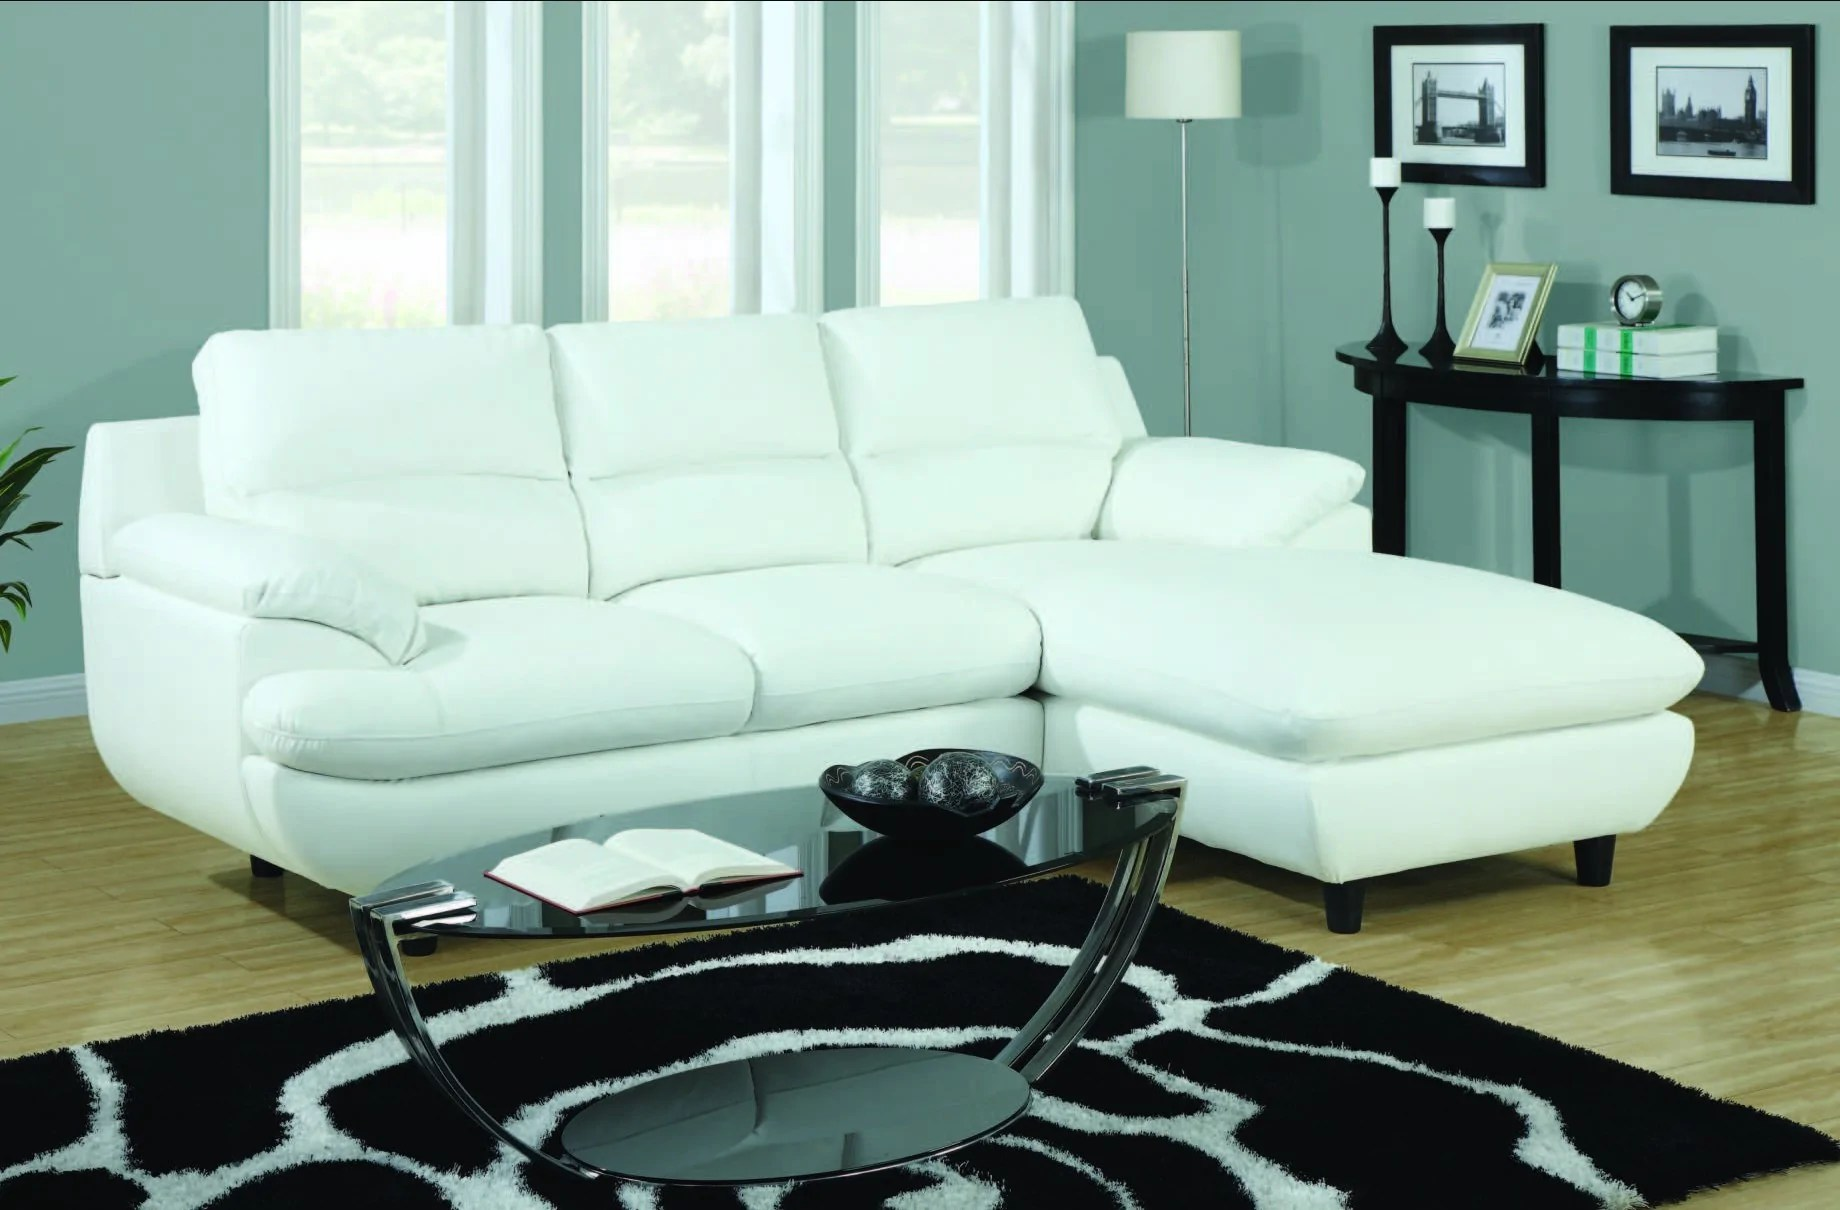 white bonded leather match sectional sofa sectionnel cuir reconstitue combo blanc